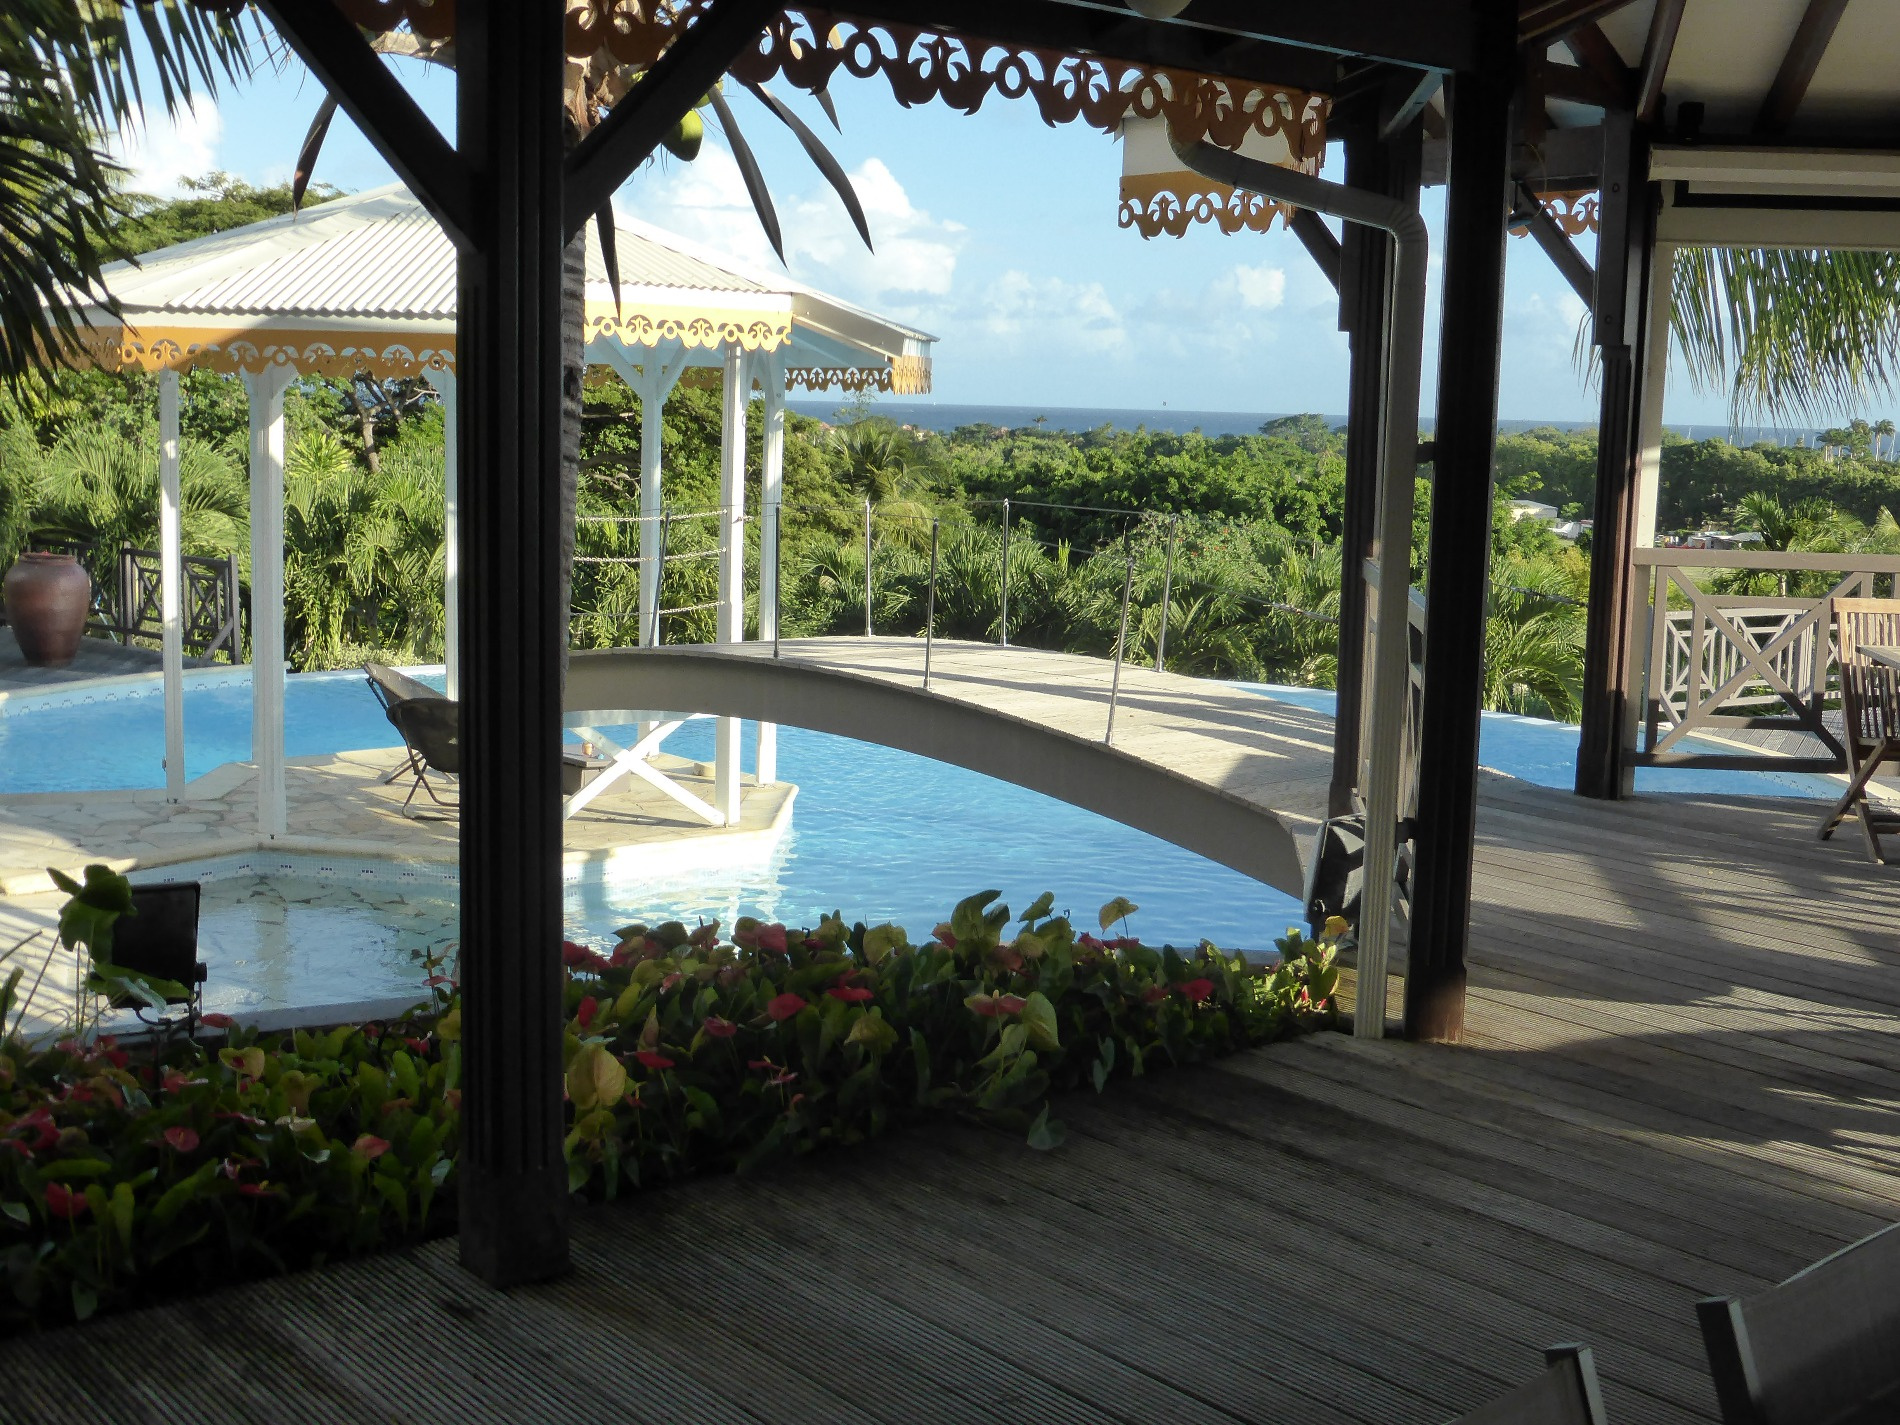 Vente appartements maisons terrains en guadeloupe baie for Maison moderne guadeloupe